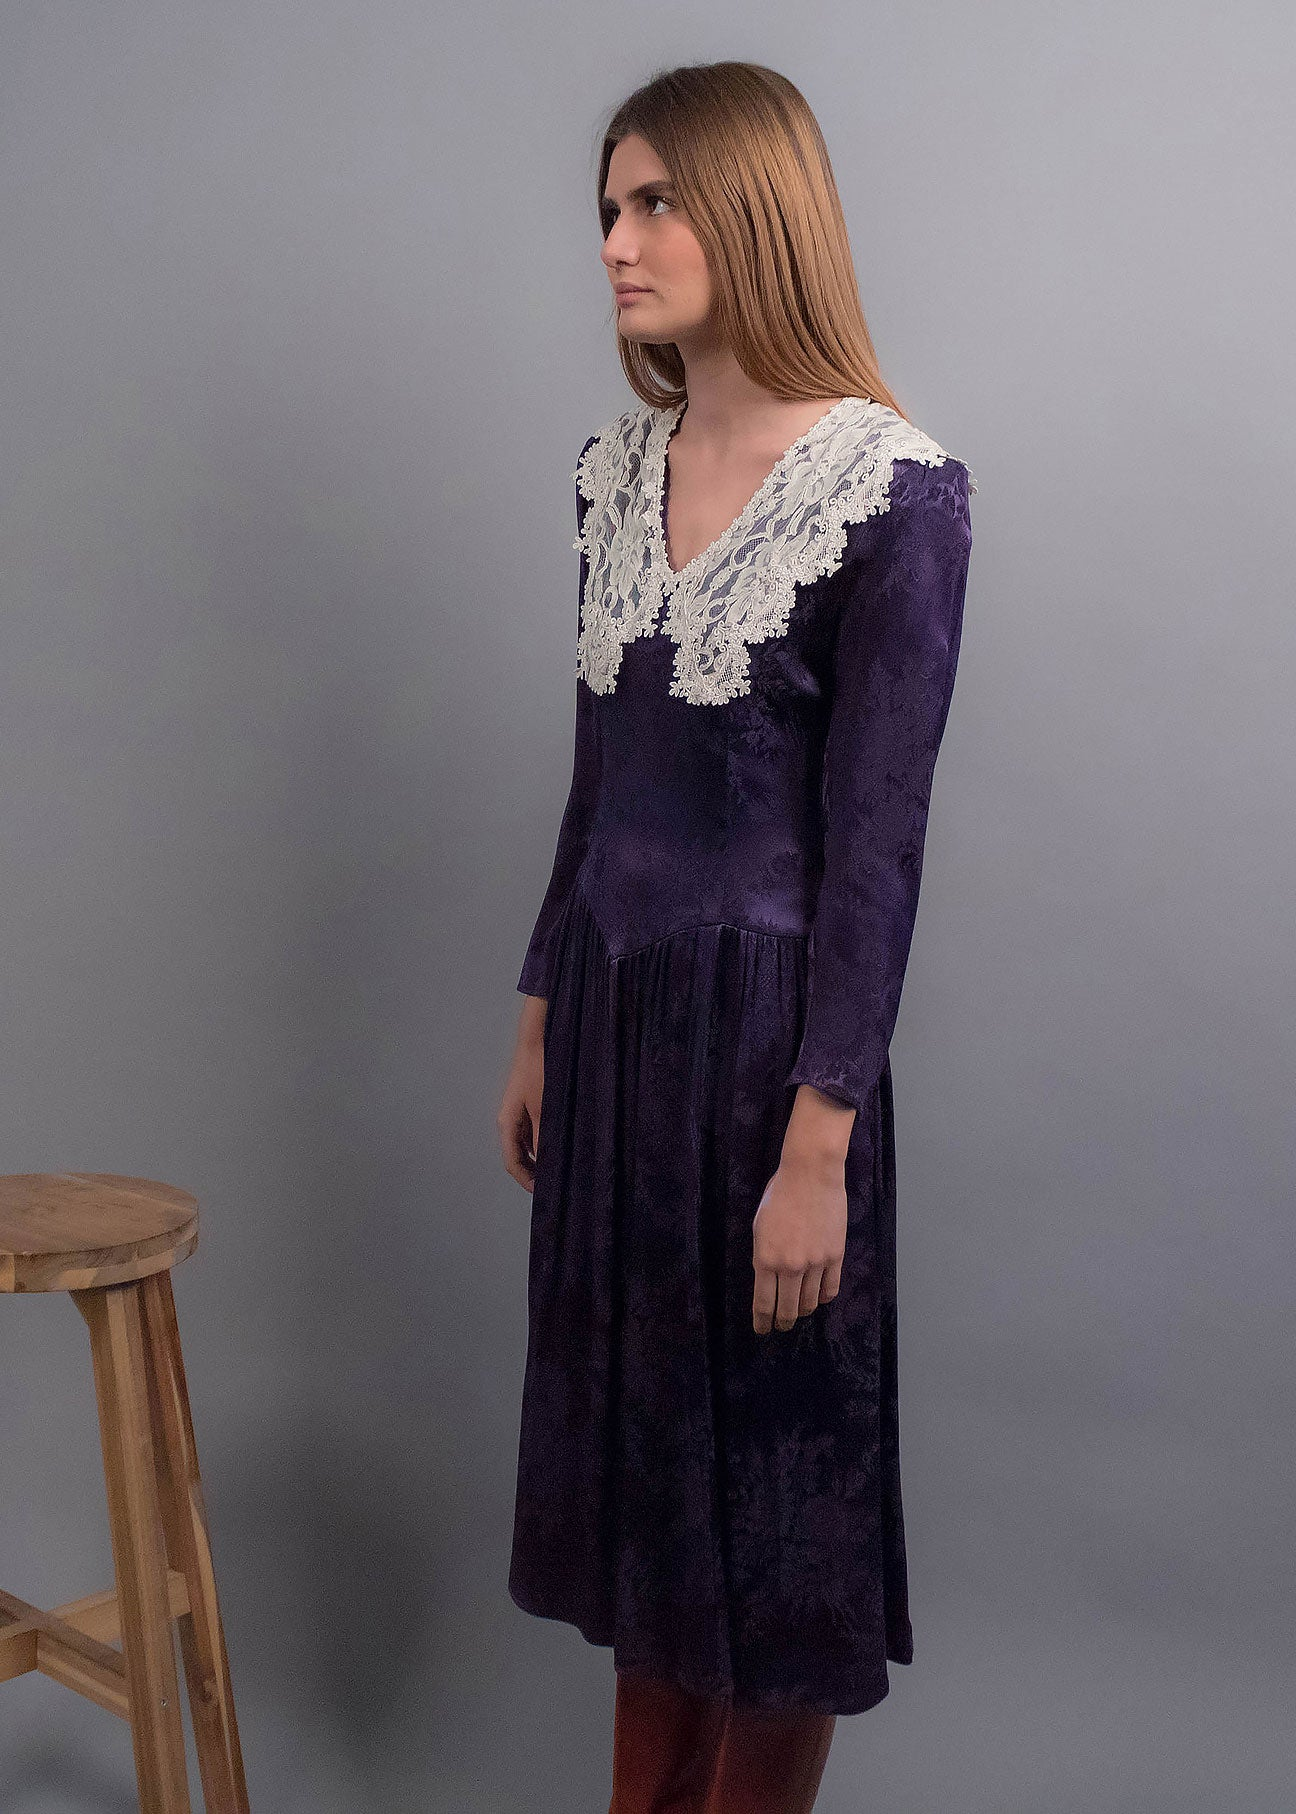 80s Gunne Sax Jacquard Floral Dress